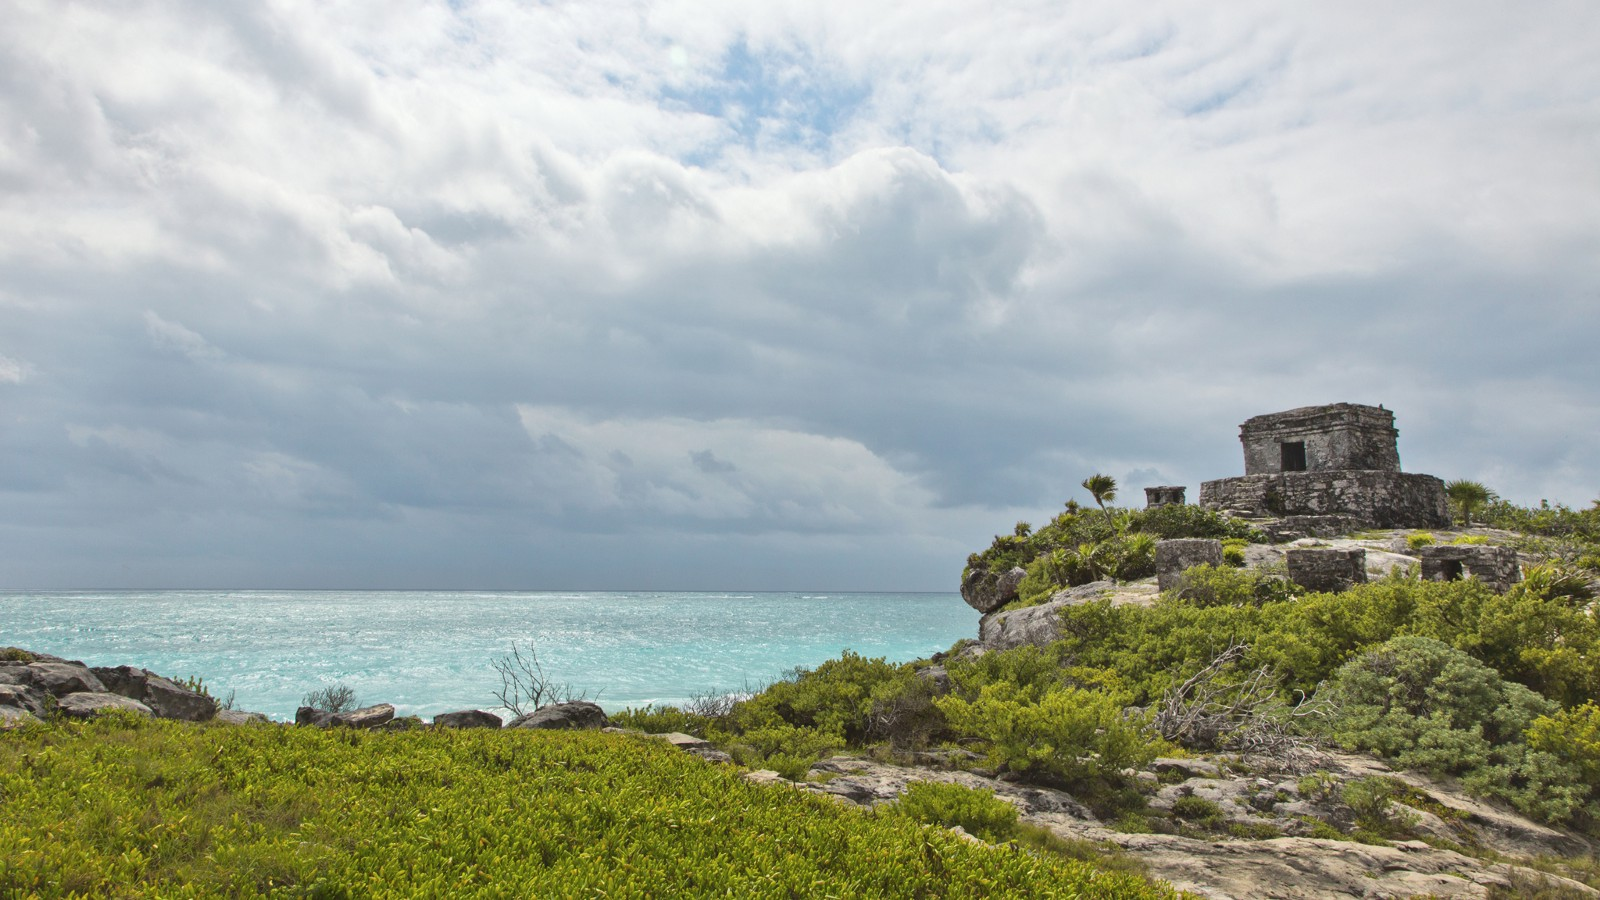 Temple of the Wind, Tulum Ruins, Quintana Roo, Mexico